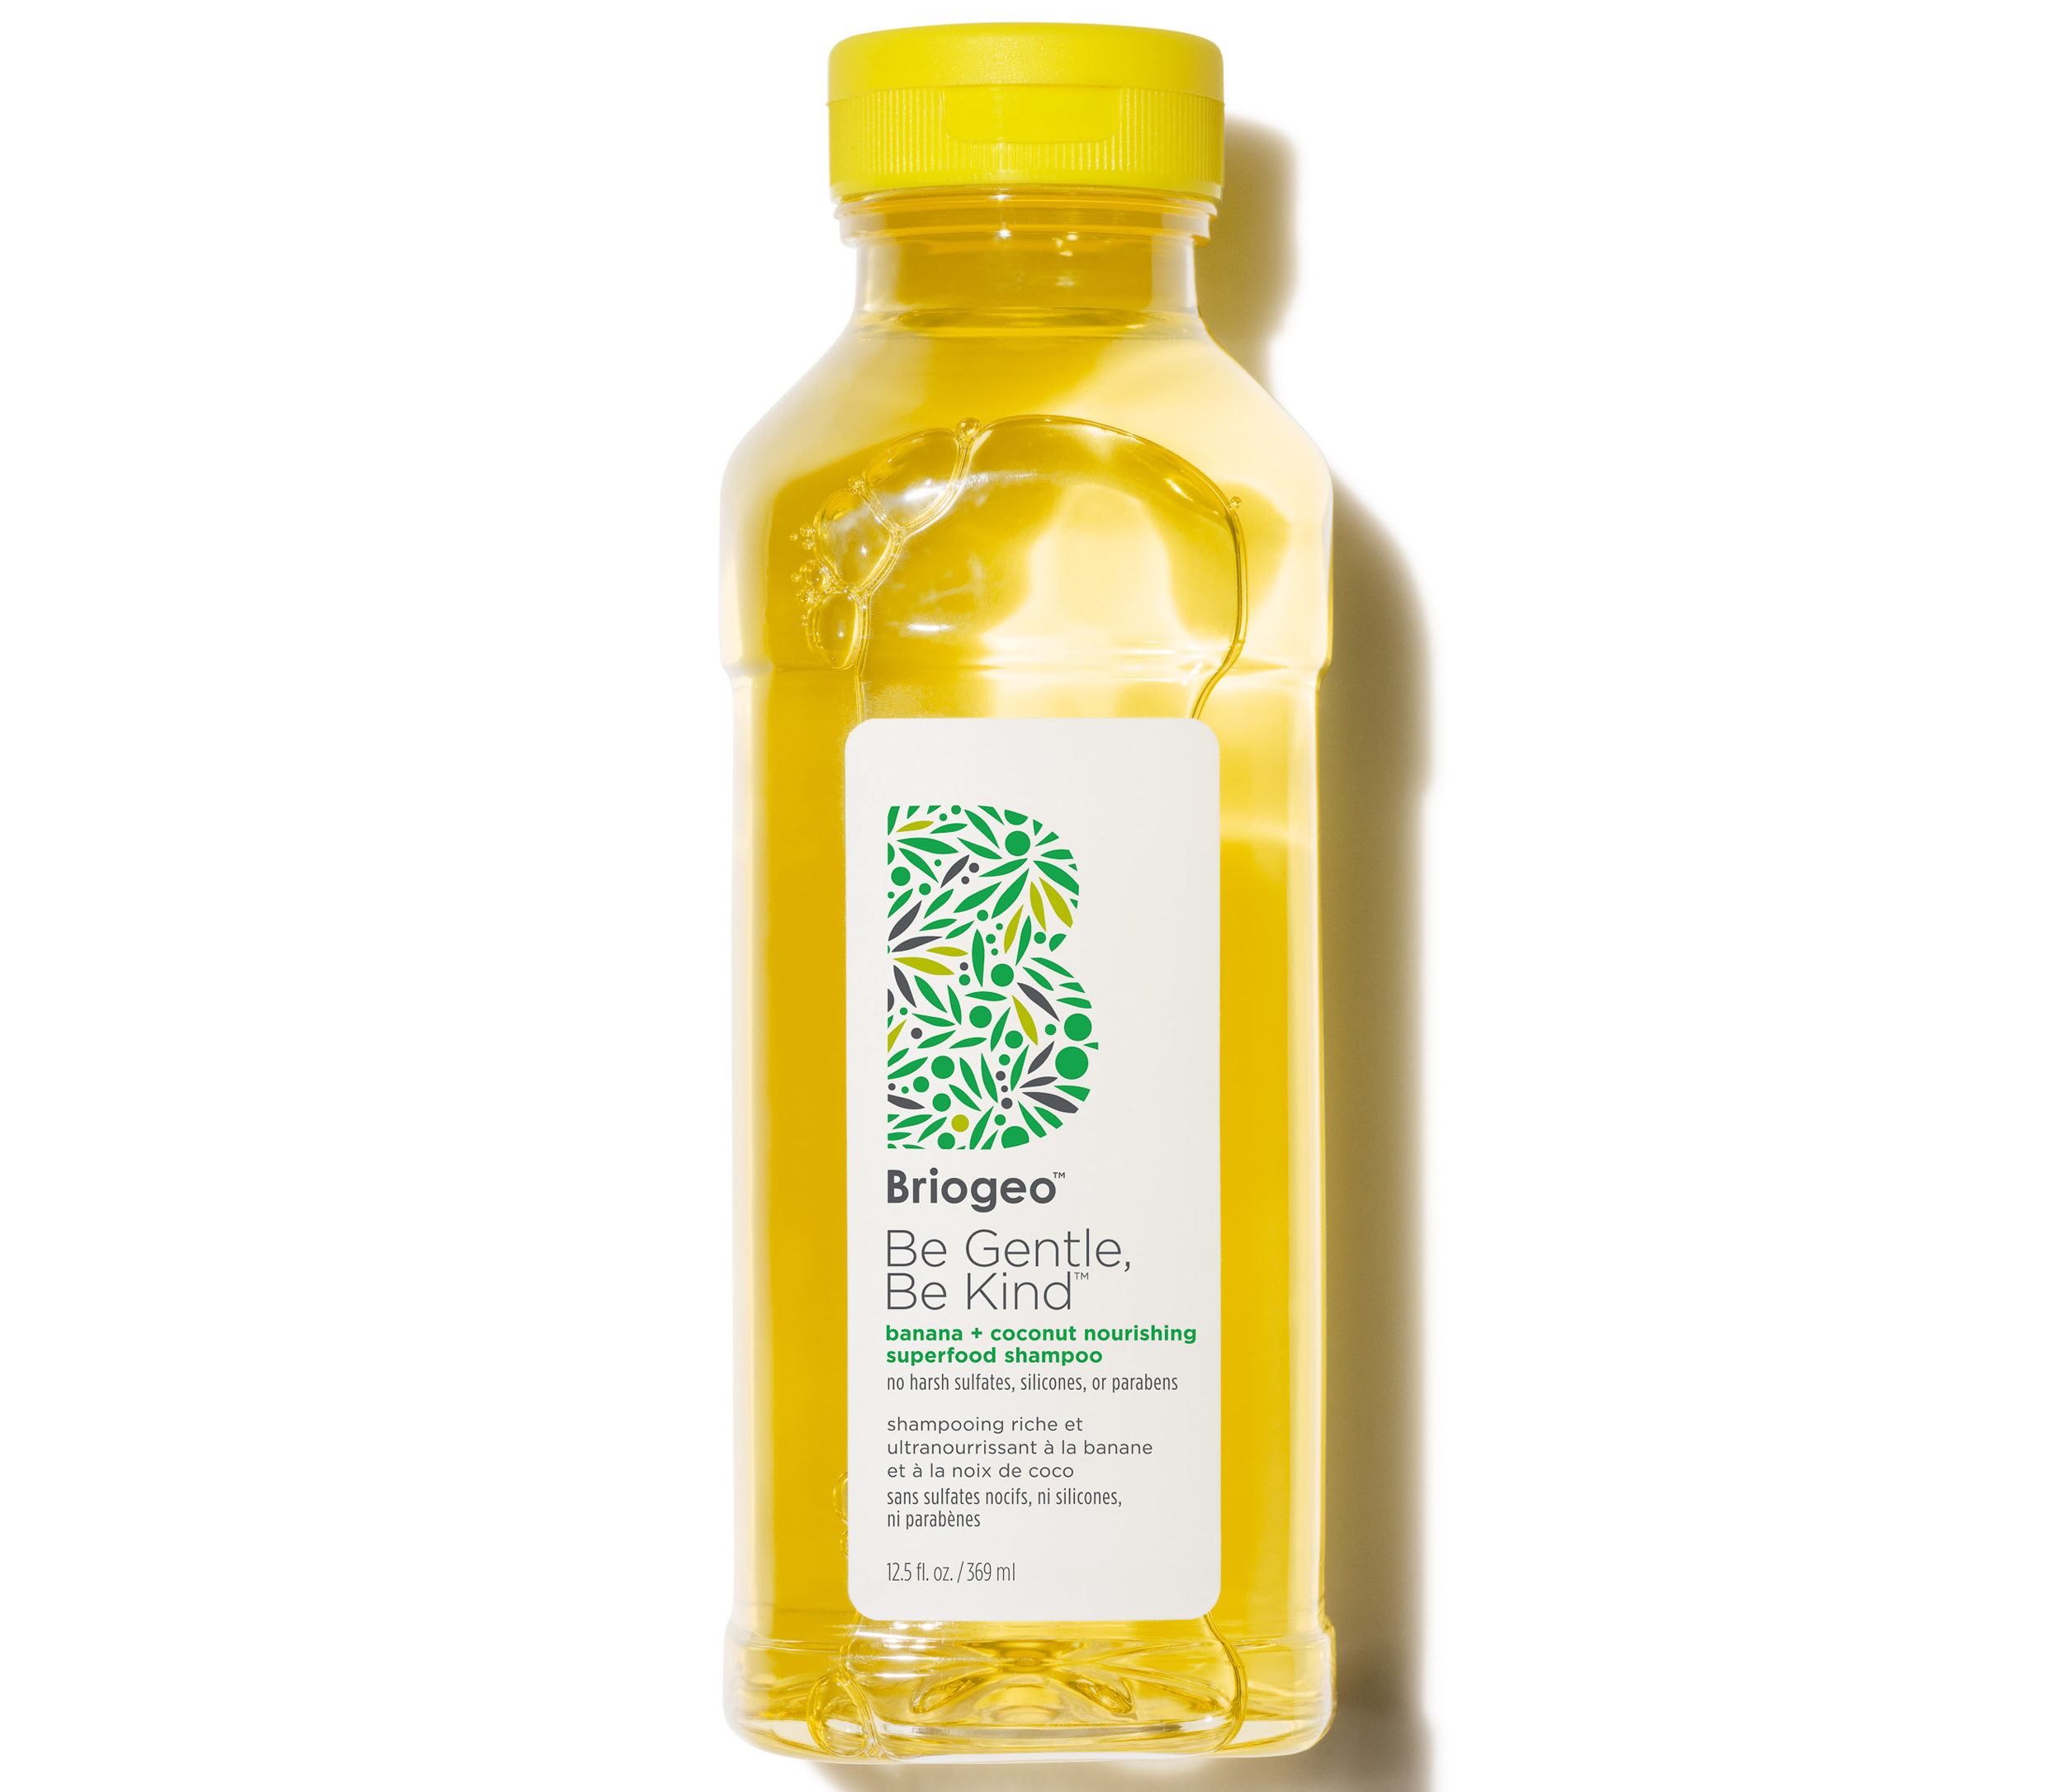 Briogeo Be Gentle, Be Kind Banana + Coconut Nourishing Superfood Shampoo 12.5oz, AED112.19